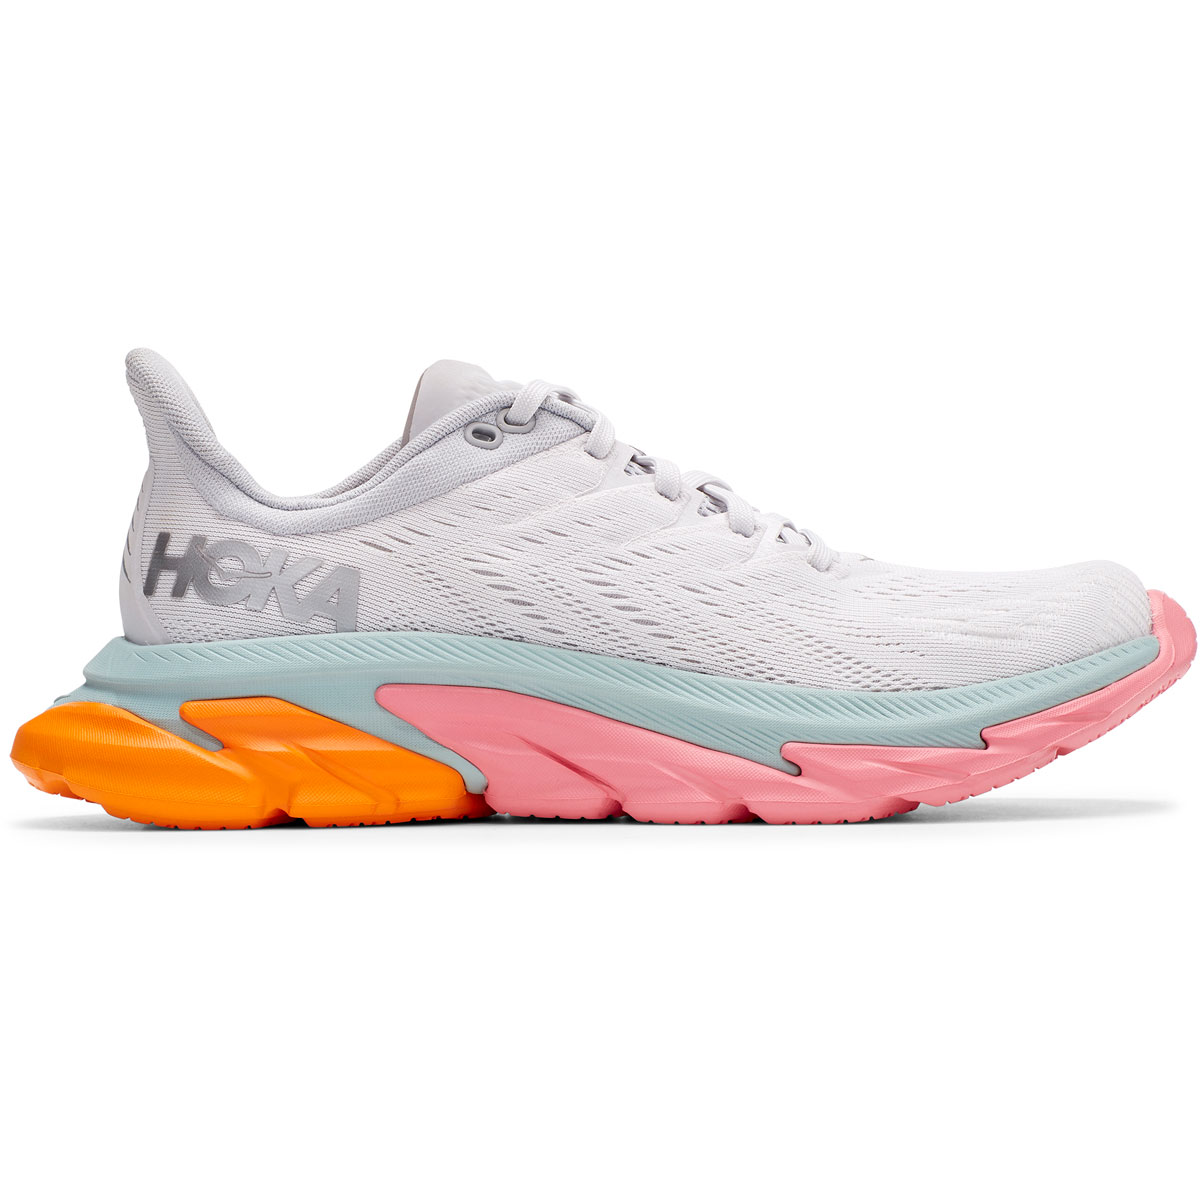 Women's Hoka One One Clifton Edge Running Shoe - Color: Nimbus Cloud/Lunar Rock - Size: 5 - Width: Regular, Nimbus Cloud/Lunar Rock, large, image 1